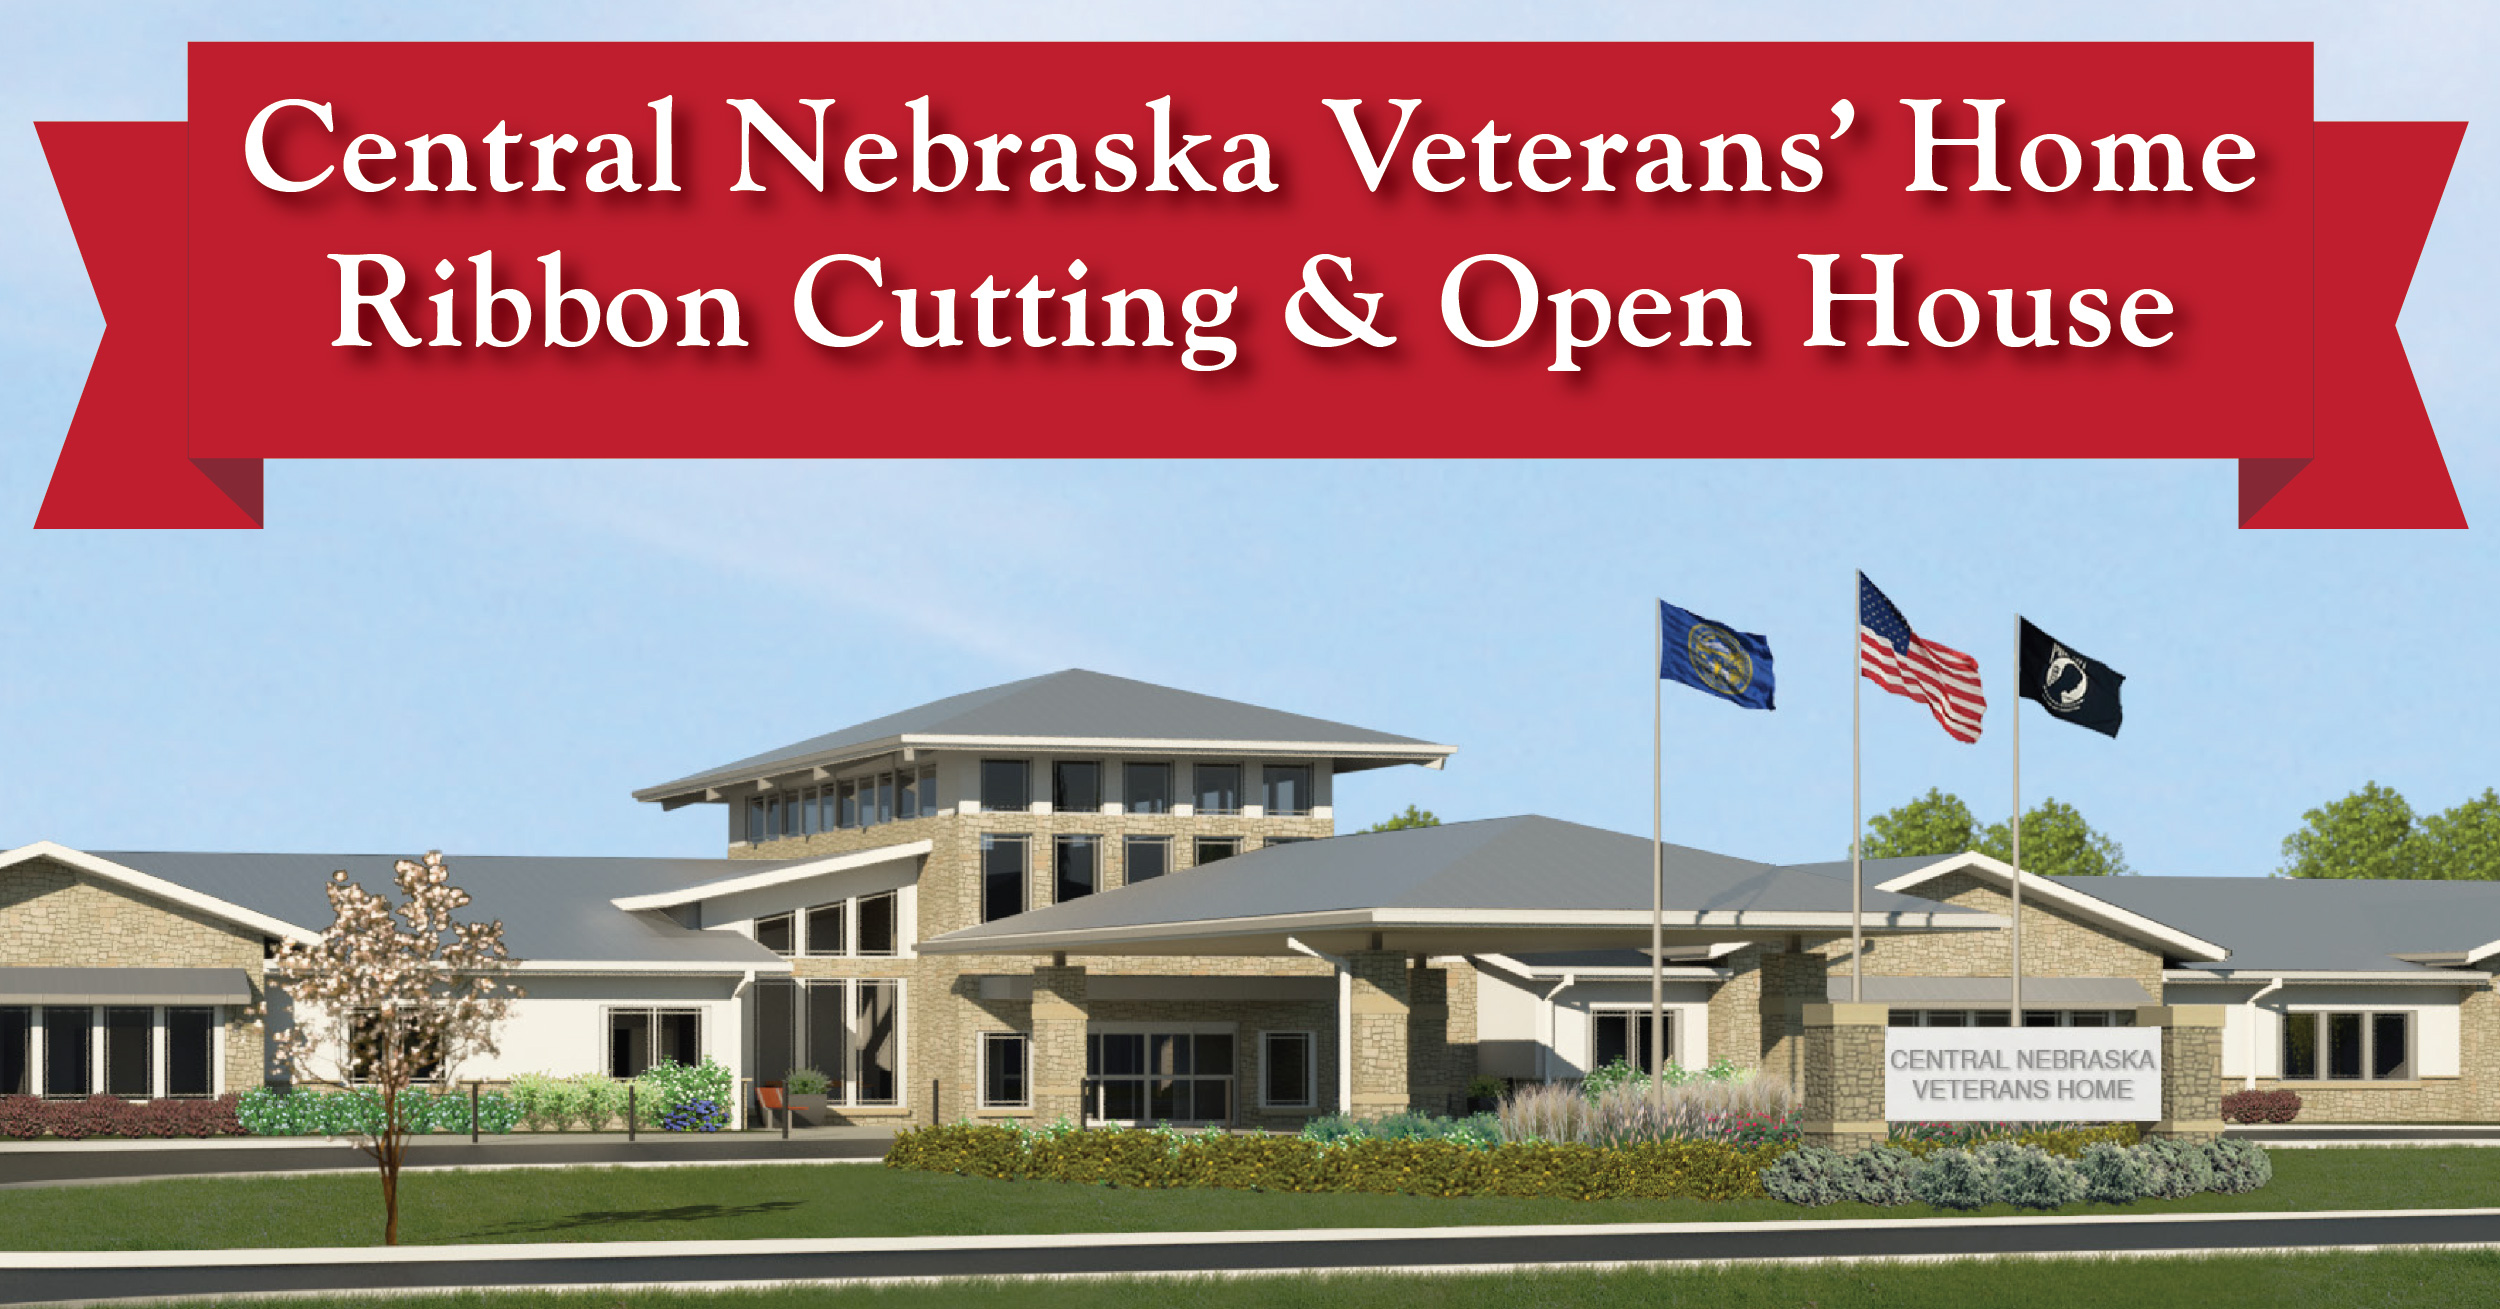 Central Nebraska Veterans' Home Ribbon Cutting